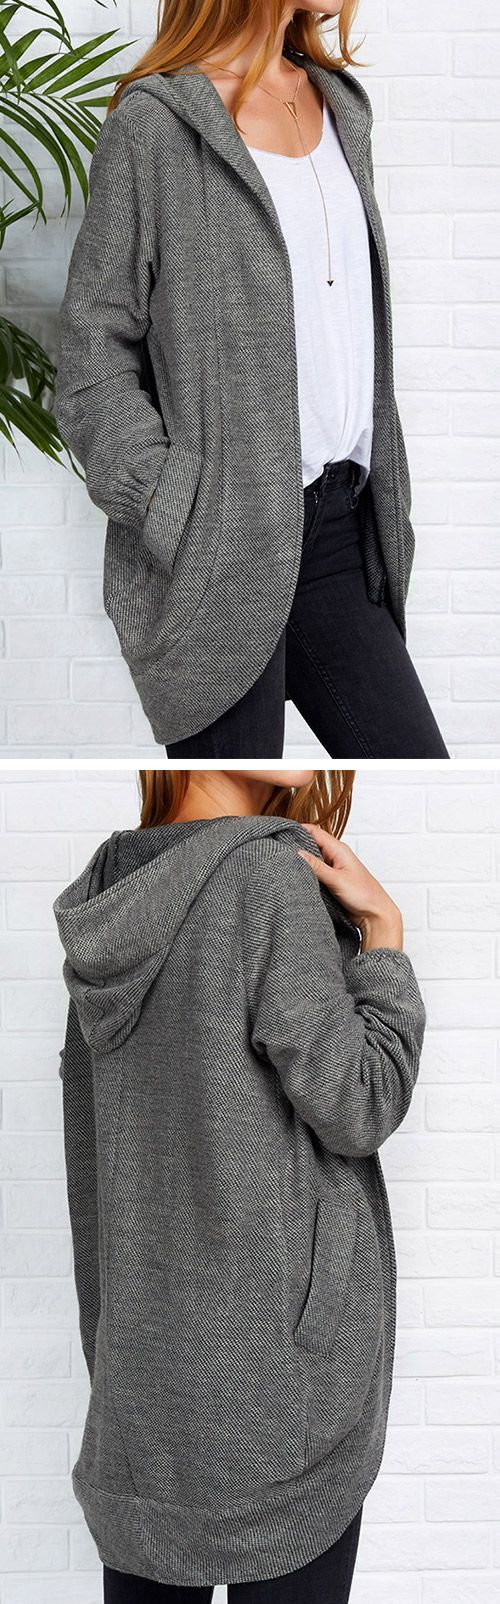 Big Sale-Enjoy 10% Off for pre-order! Only $34.99! Start your day off right in Hooded coat. All those hooded design and open front and pocket at sides in perfect harmony.Share more wonderful items at Cupshe.com !